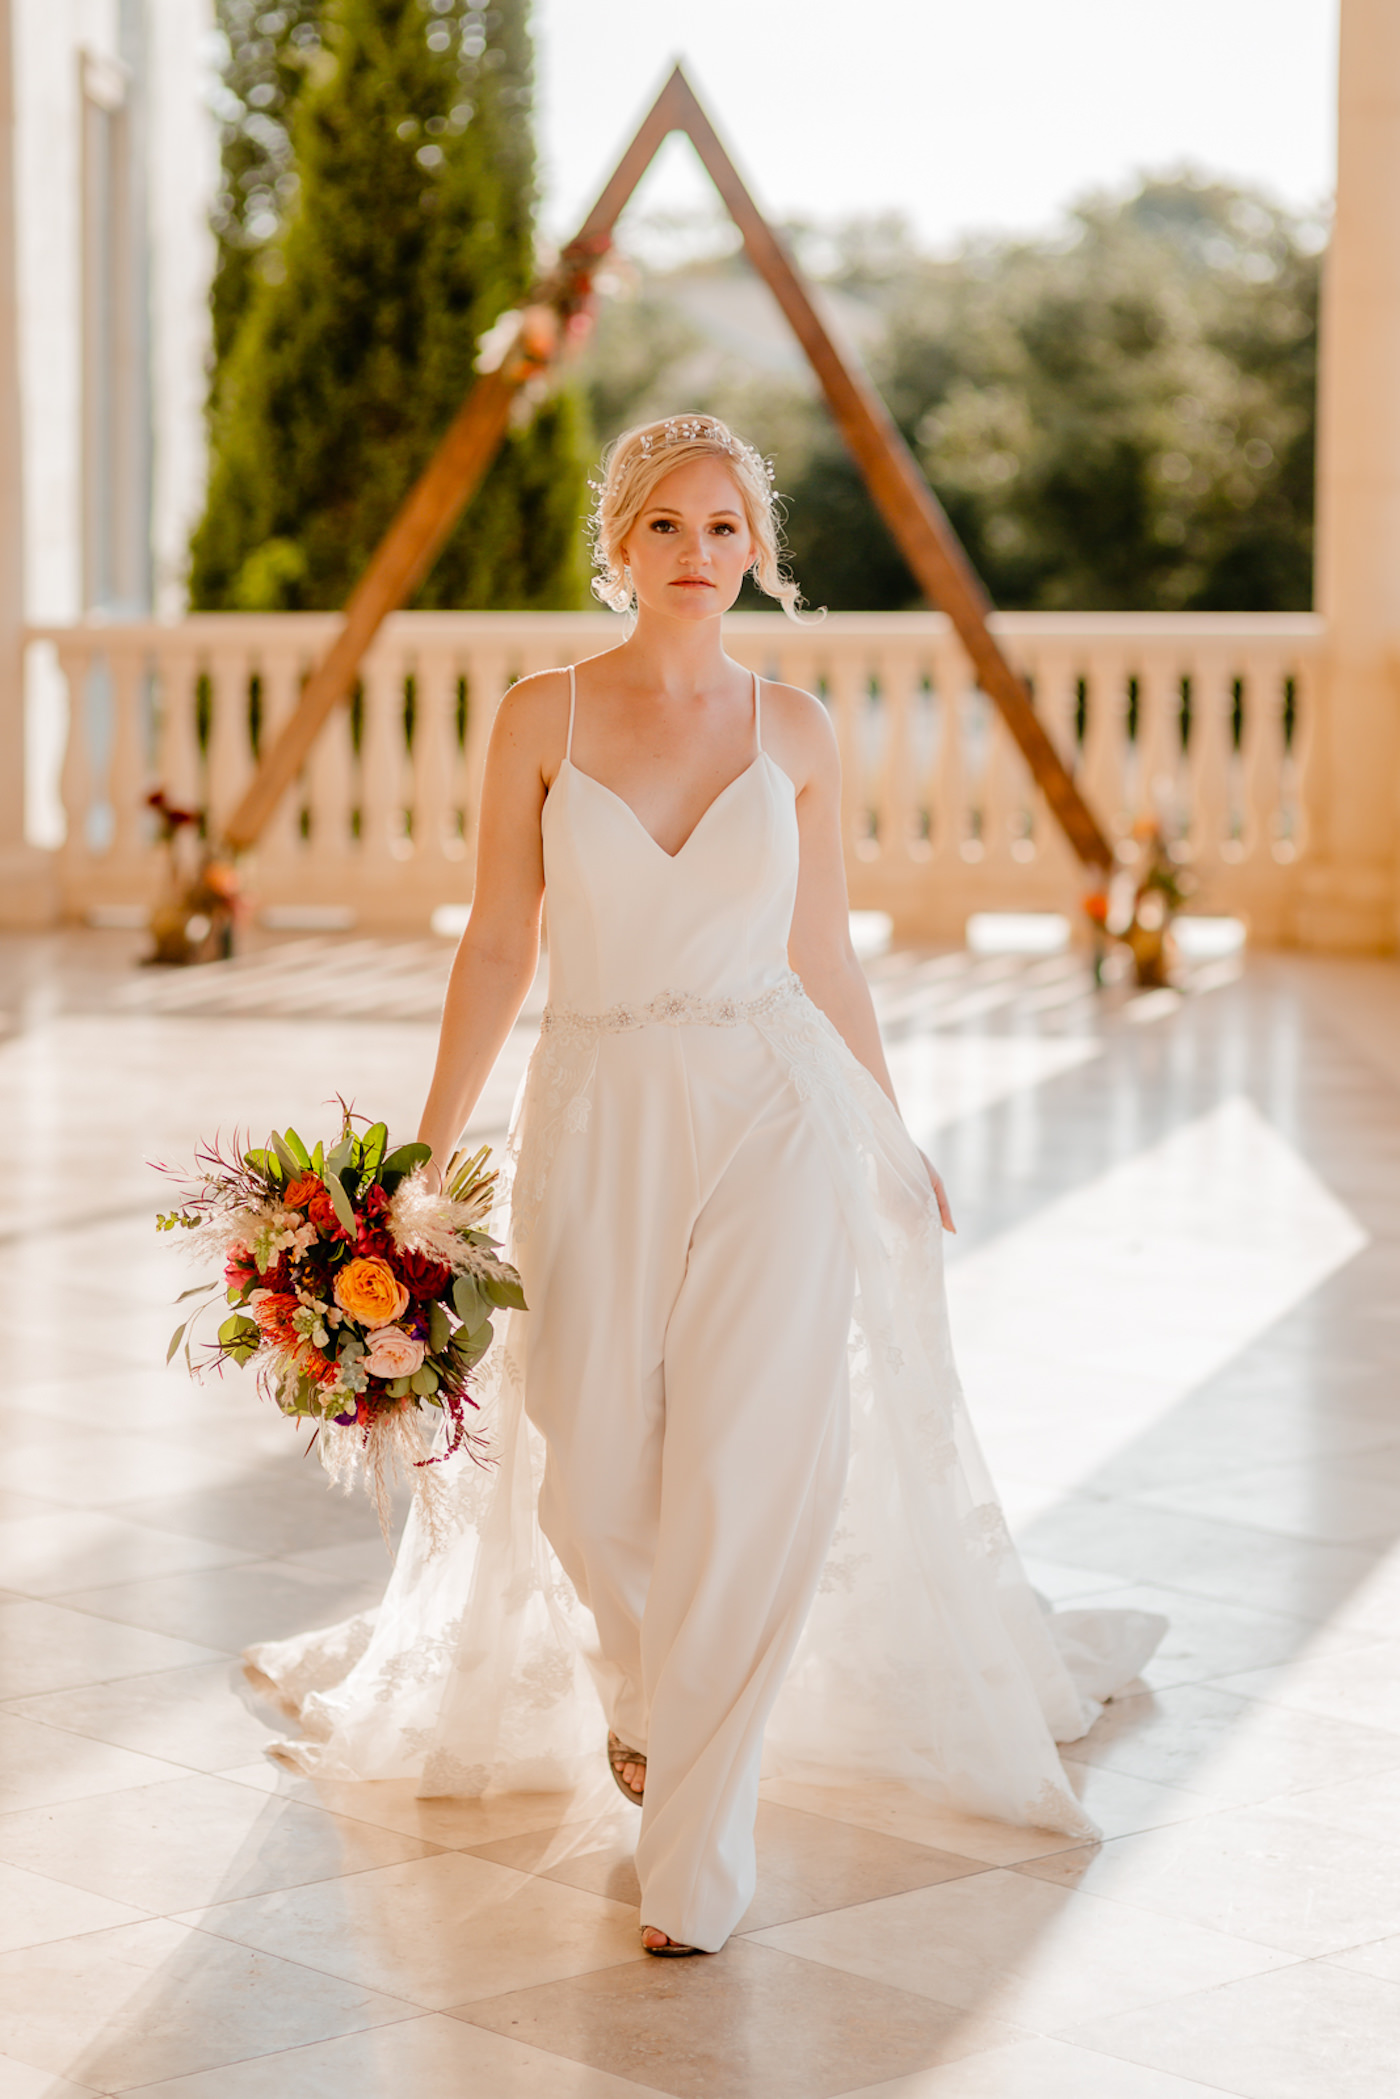 Boho Glam Wedding Ceremony Backdrop with Wood Geometric Arch | Colorful Orange Pink and Red Bouquet with Pampas Grass | Tampa Wedding Florist Monarch Events and Designs | Embroidered Floral Lace V Neck Bridal Gown